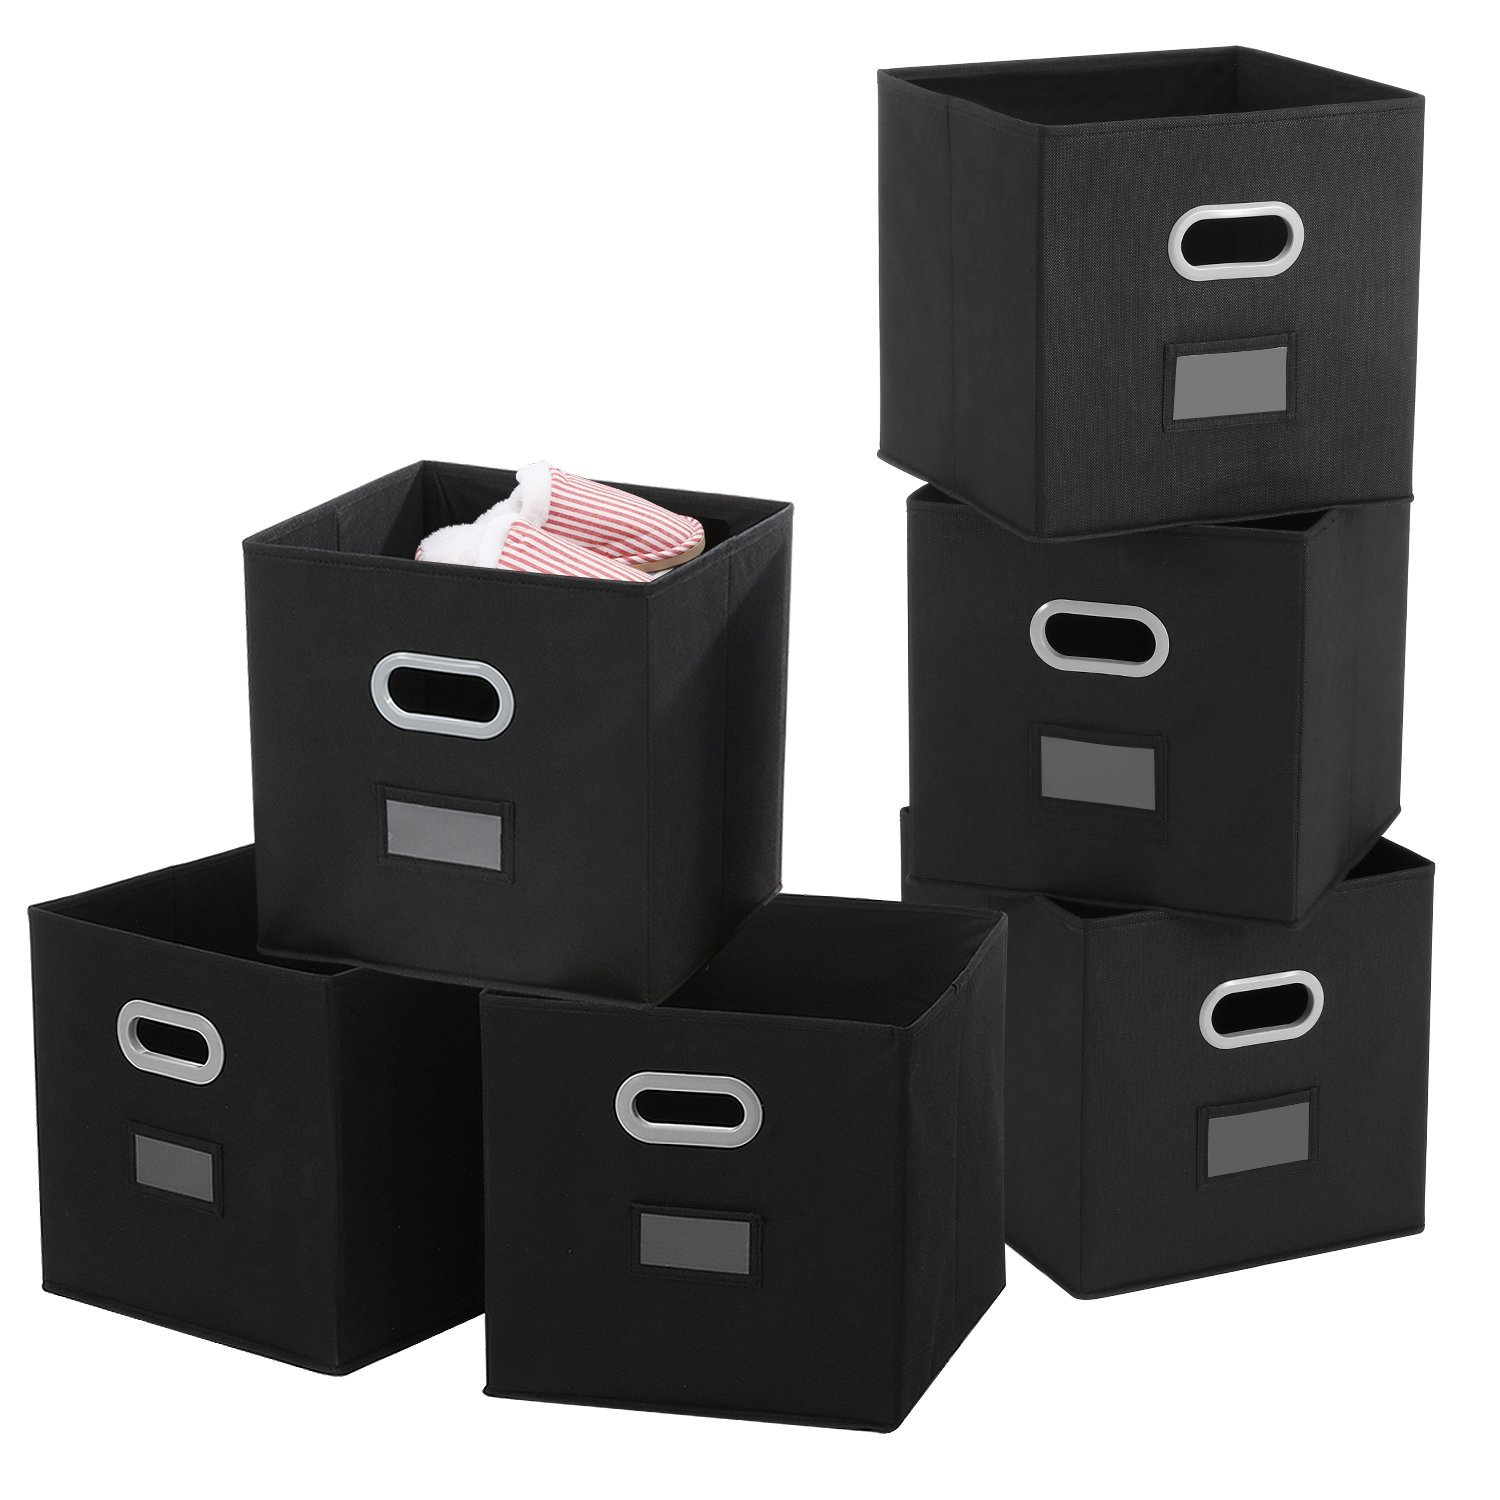 Cloths Storage Bins with Label Holders, Magicfly 6 Pack Fodable Fabric Cube Organizers with Dual Handles Beige